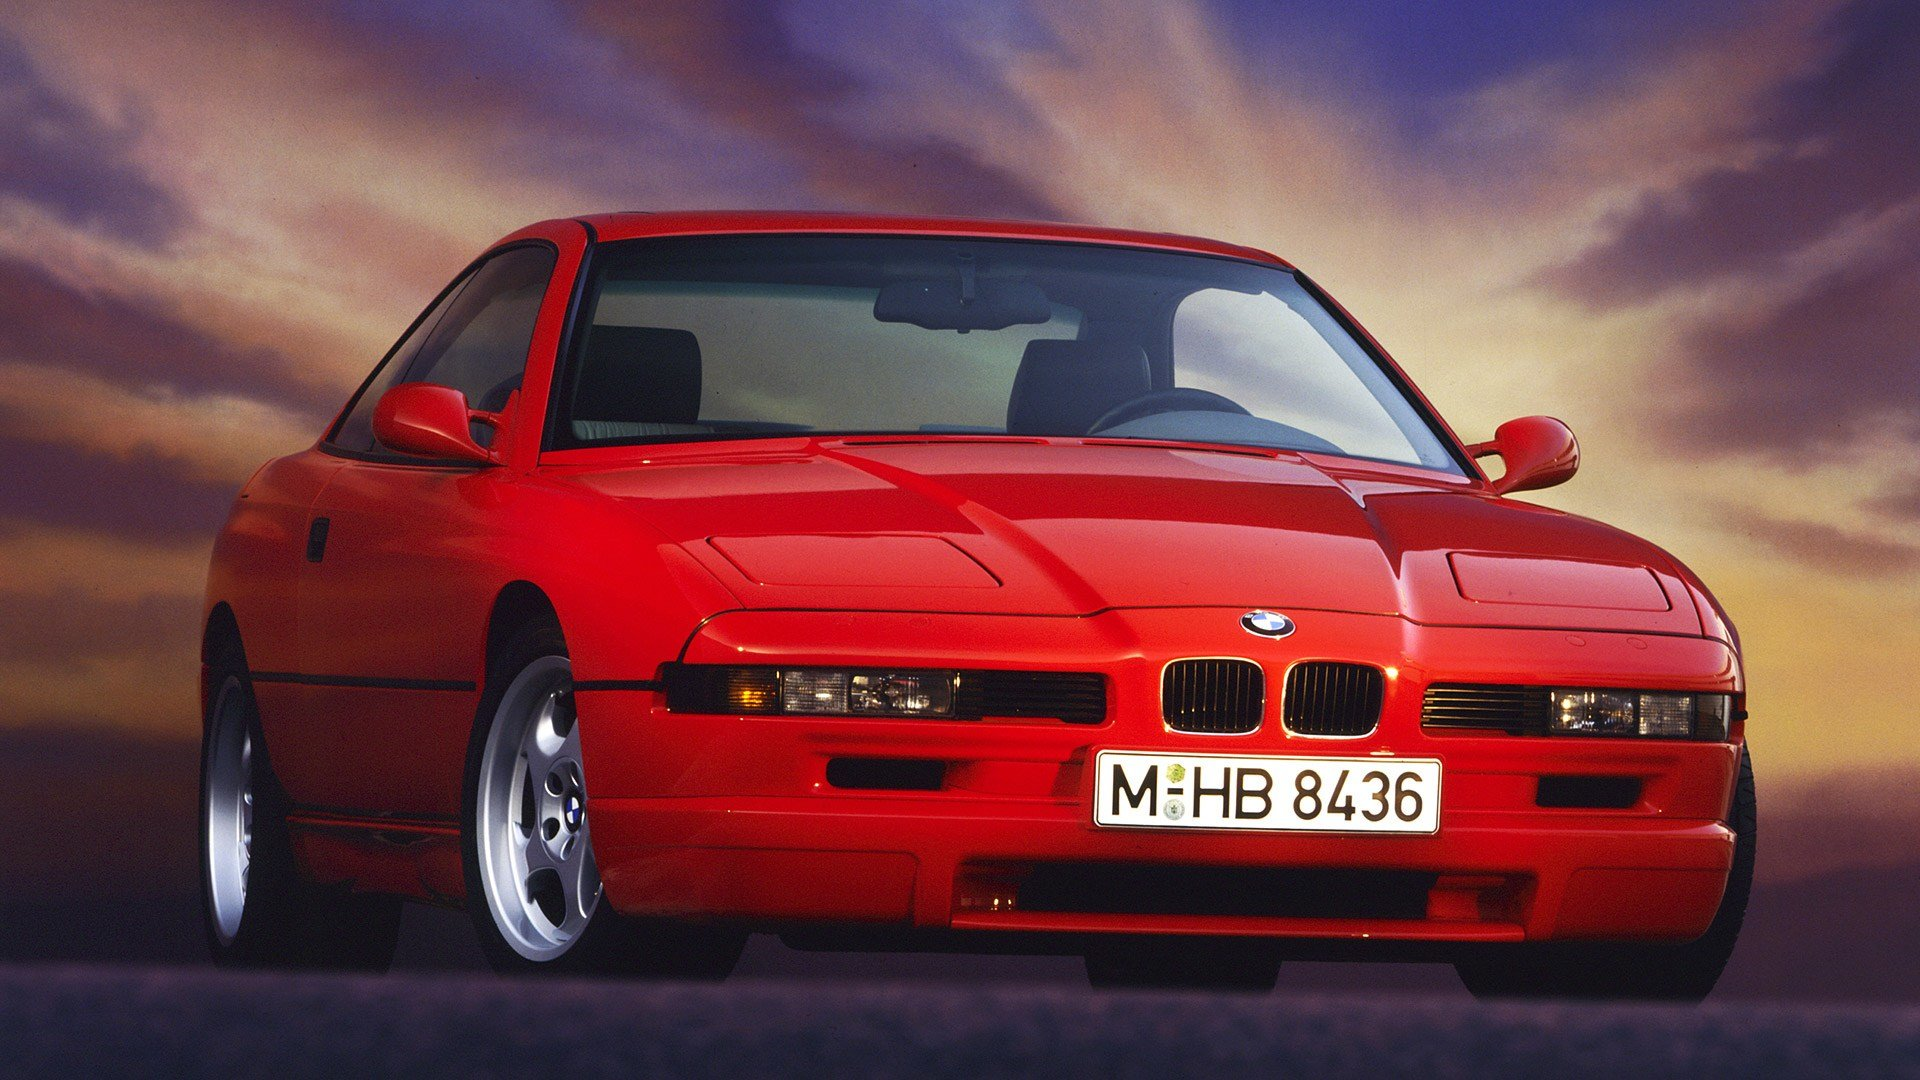 Latest 1992 Bmw 850 Csi Wallpapers Hd Images Wsupercars Free Download